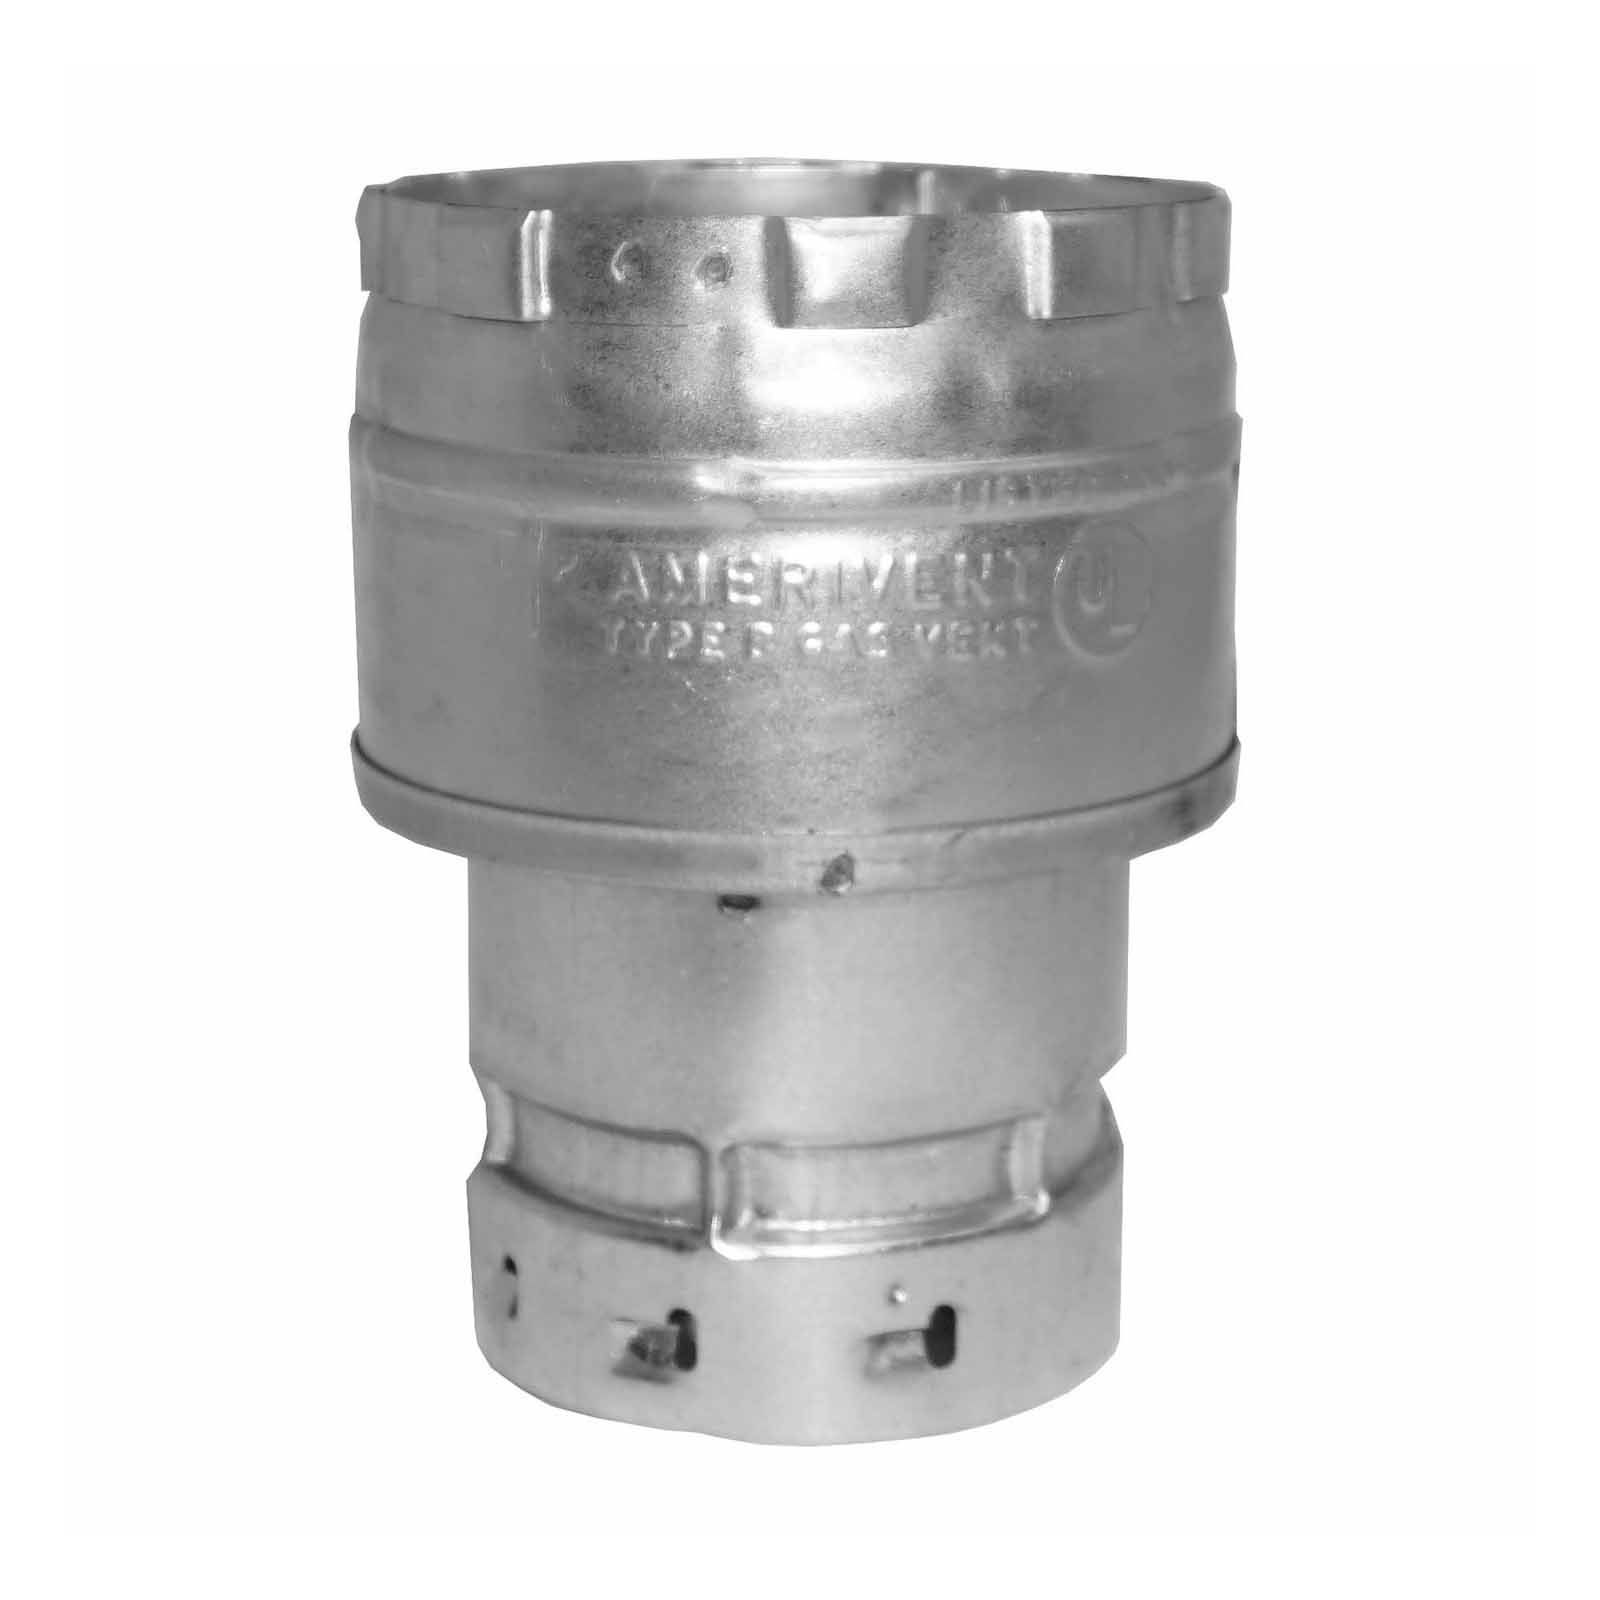 "AmeriVent 4EIX6 - B-Vent Increaser, 4"" To 6"""